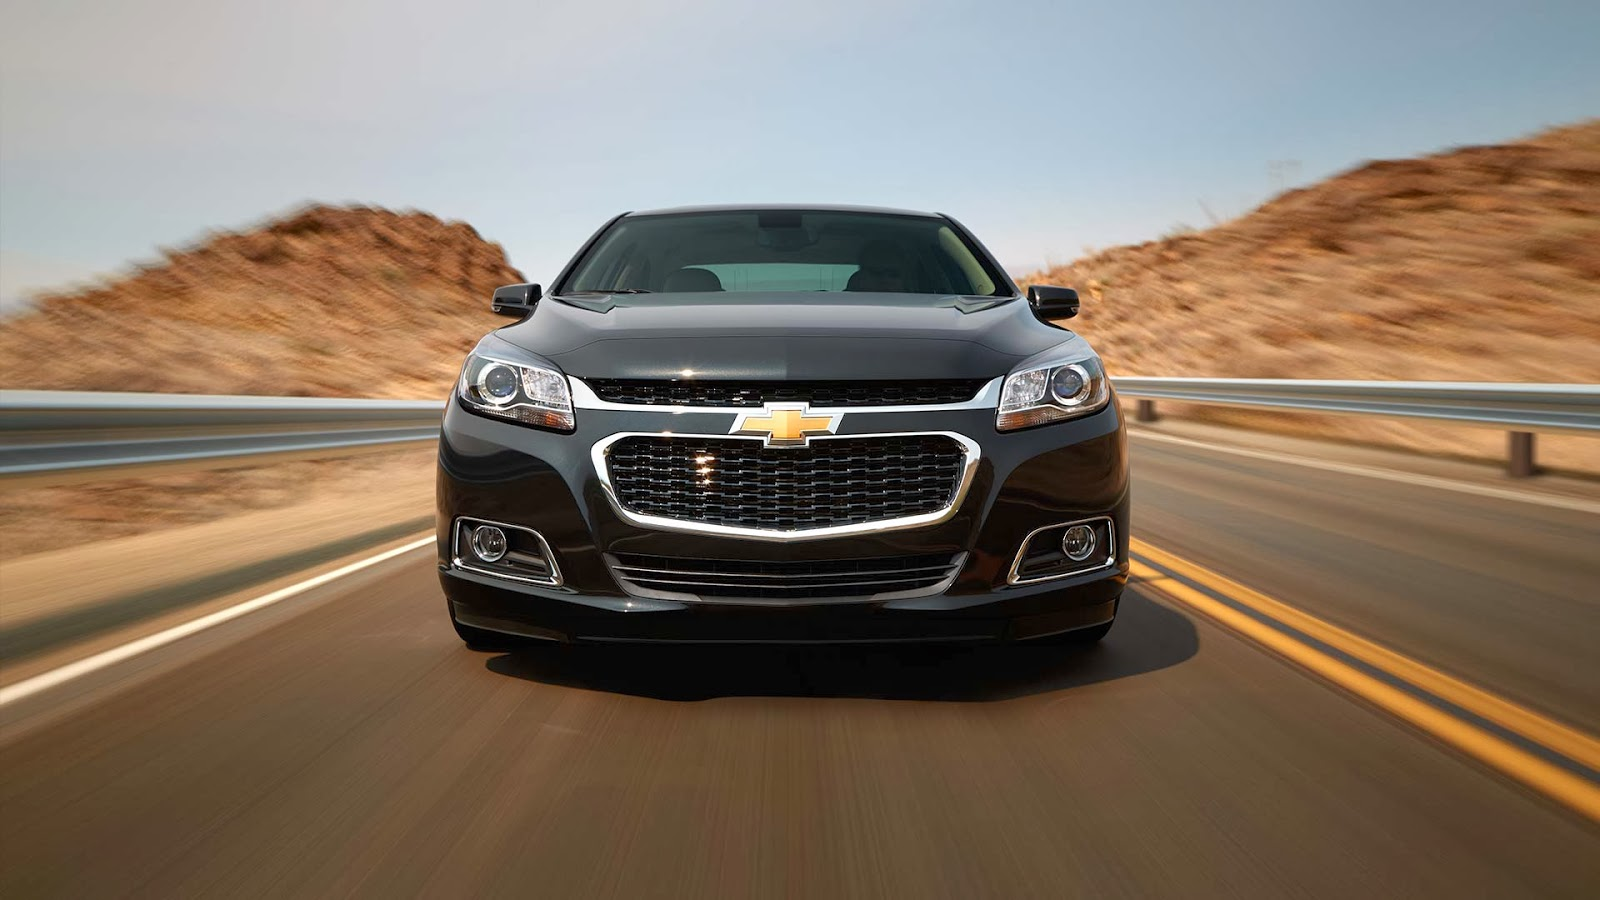 New 2014 Chevrolet Malibu Receives 5-Star Overall Vehicle Score